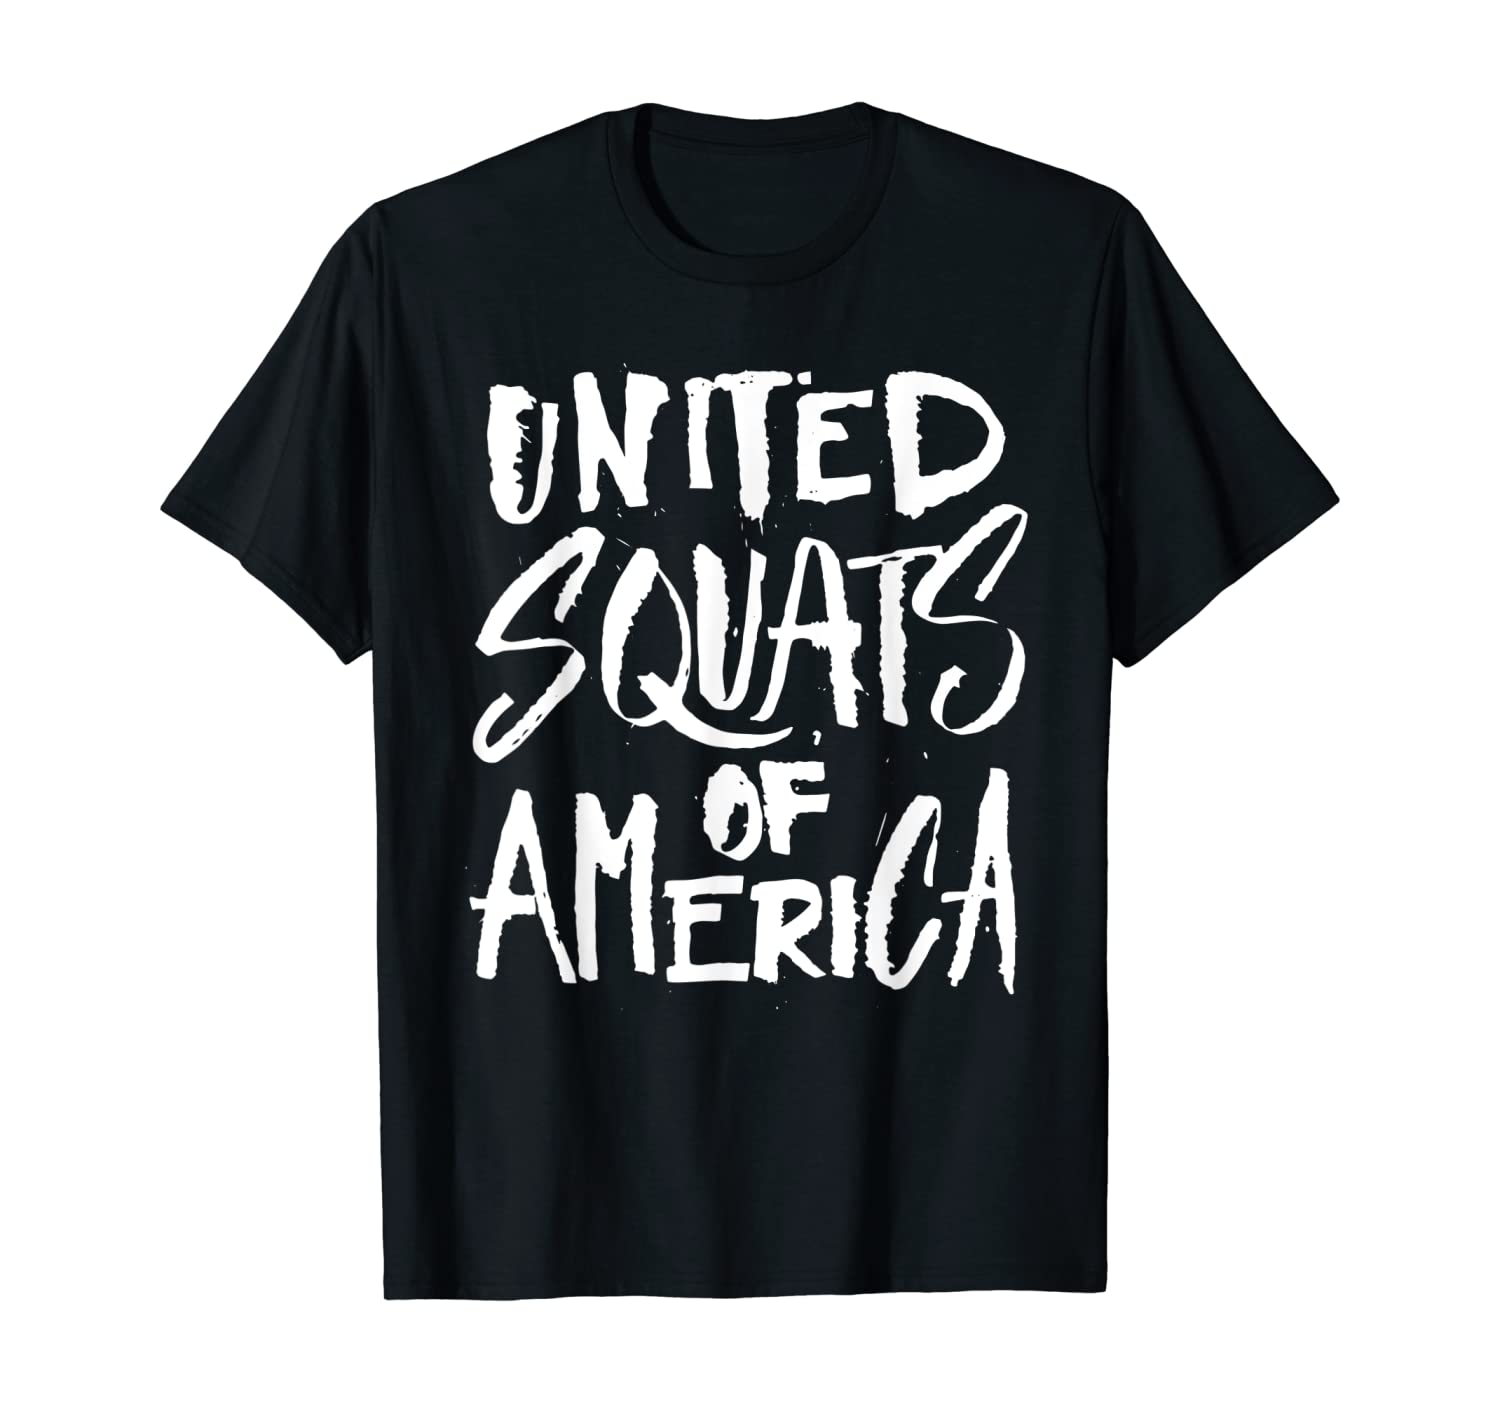 United Squats of America - Funny Workout Gym Fitness T-Shirt